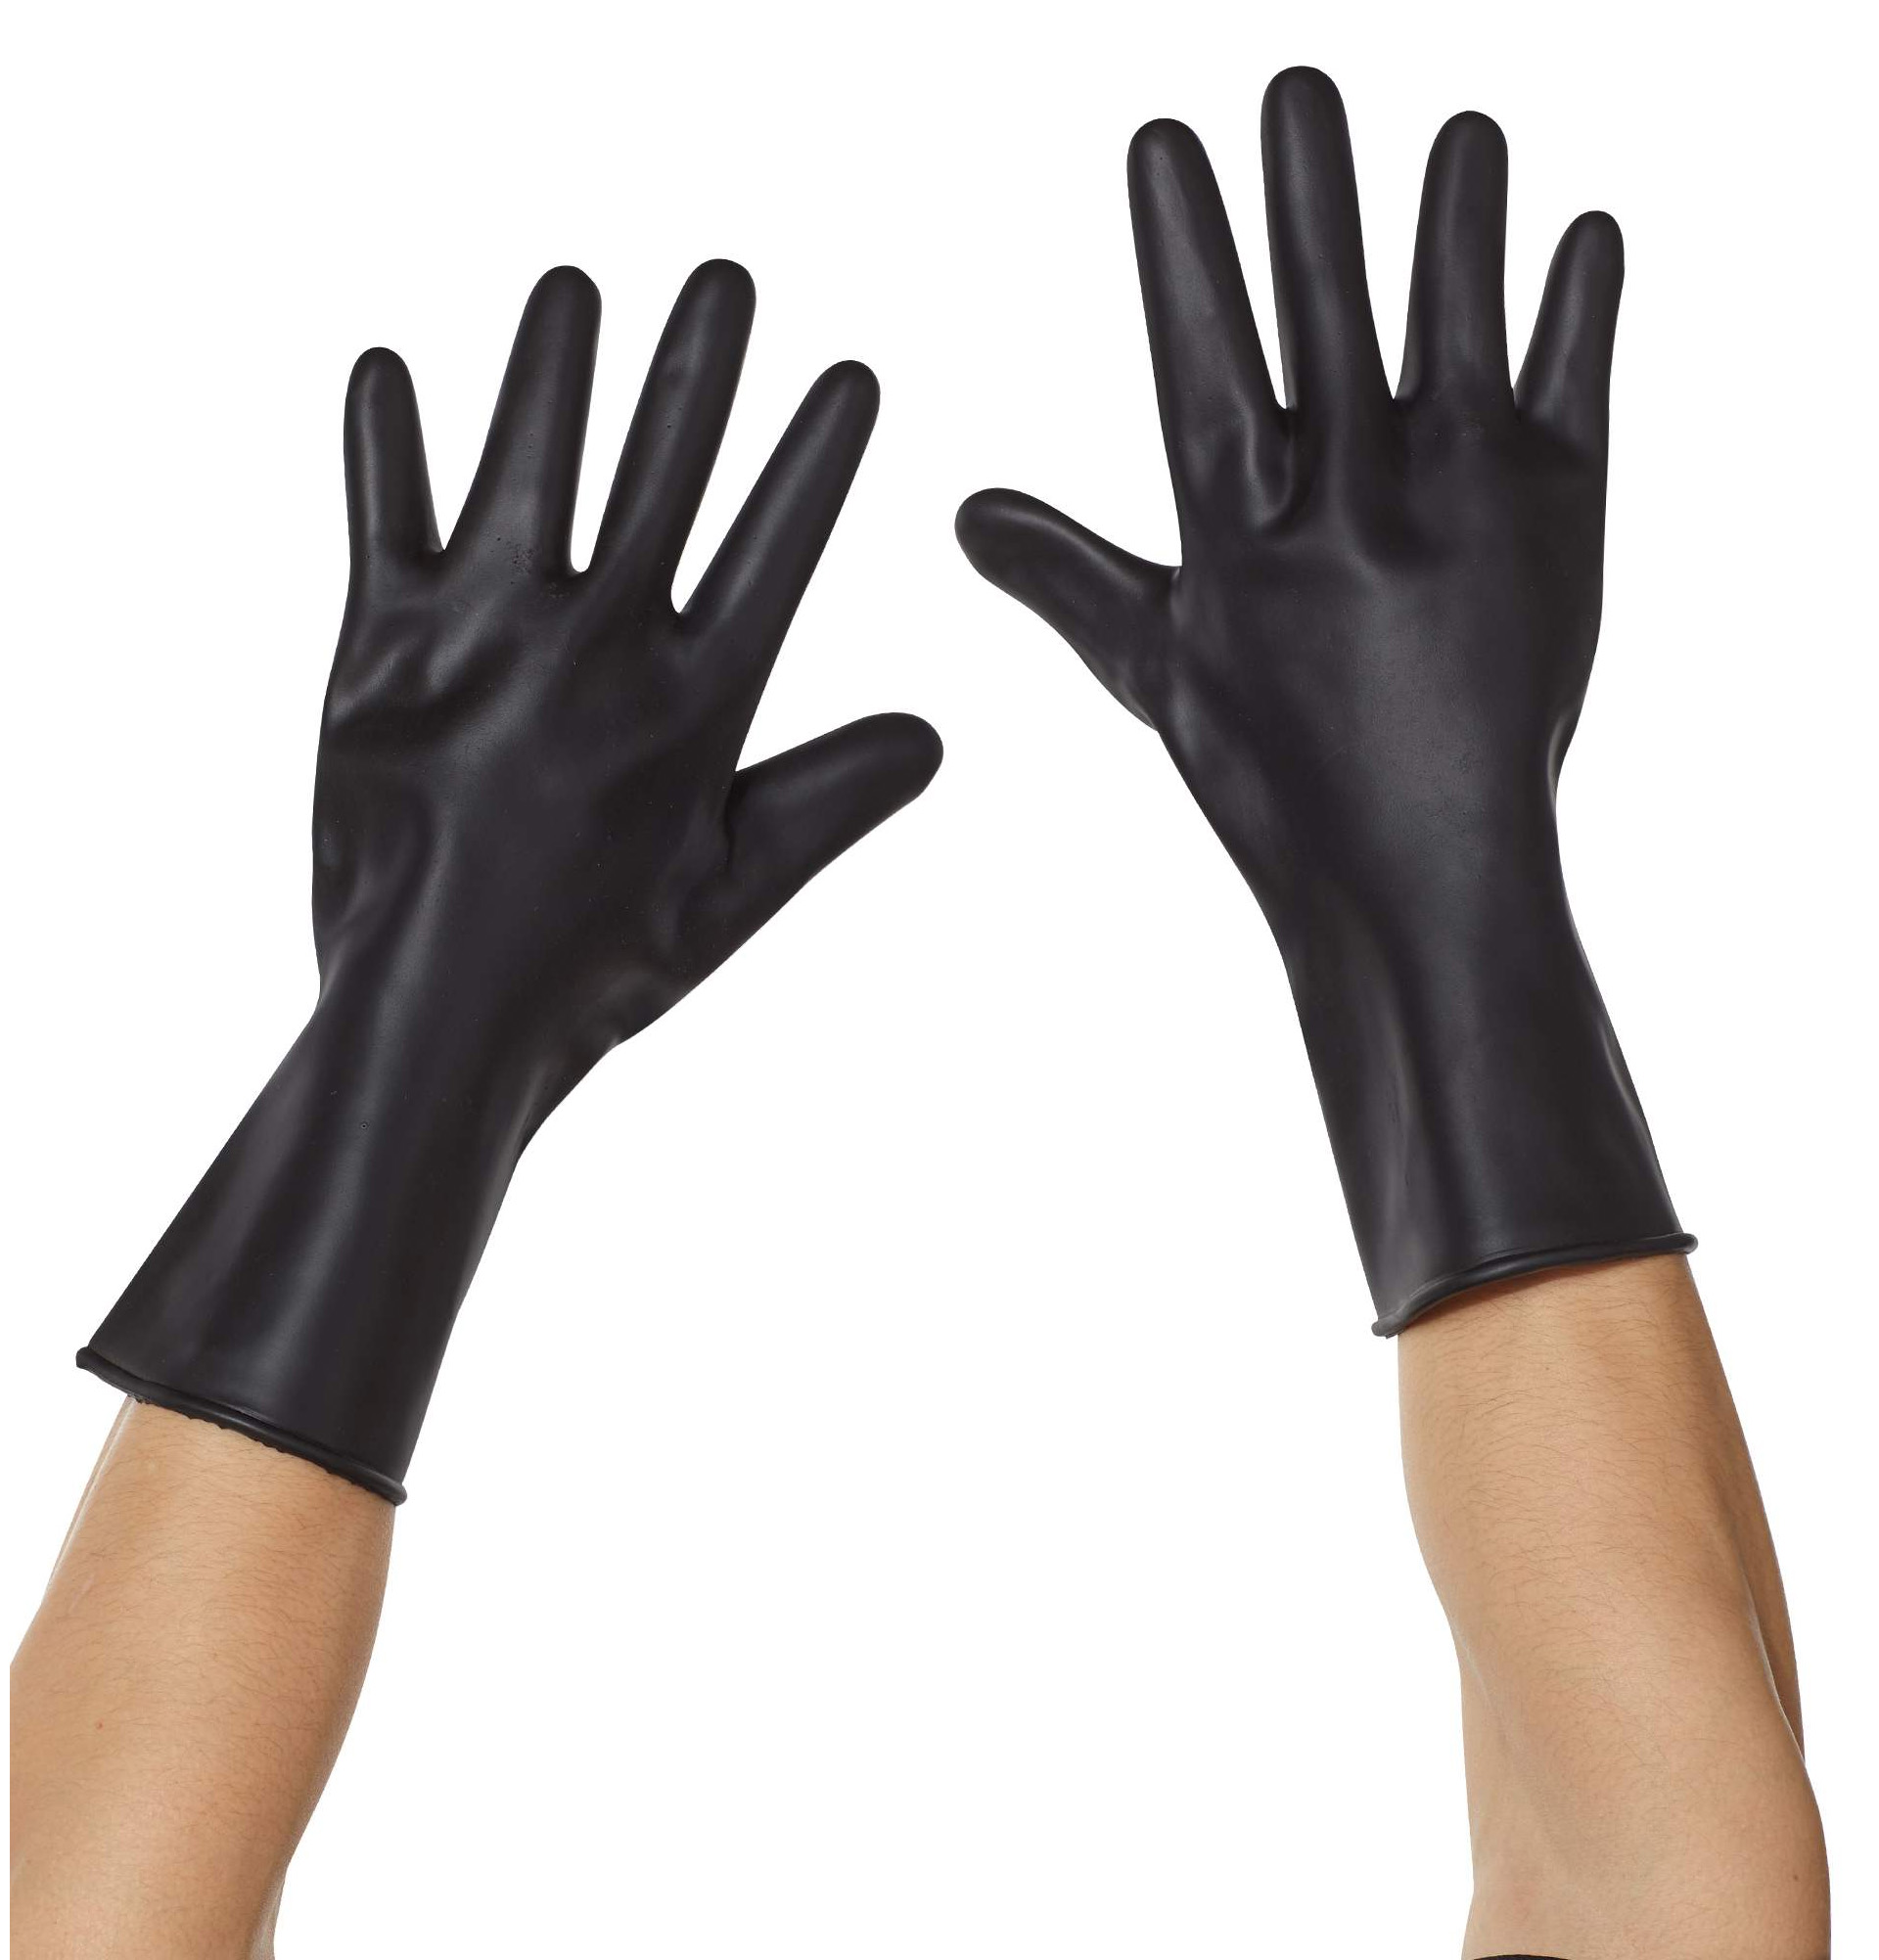 Spirit Halloween: Rubber Gloves